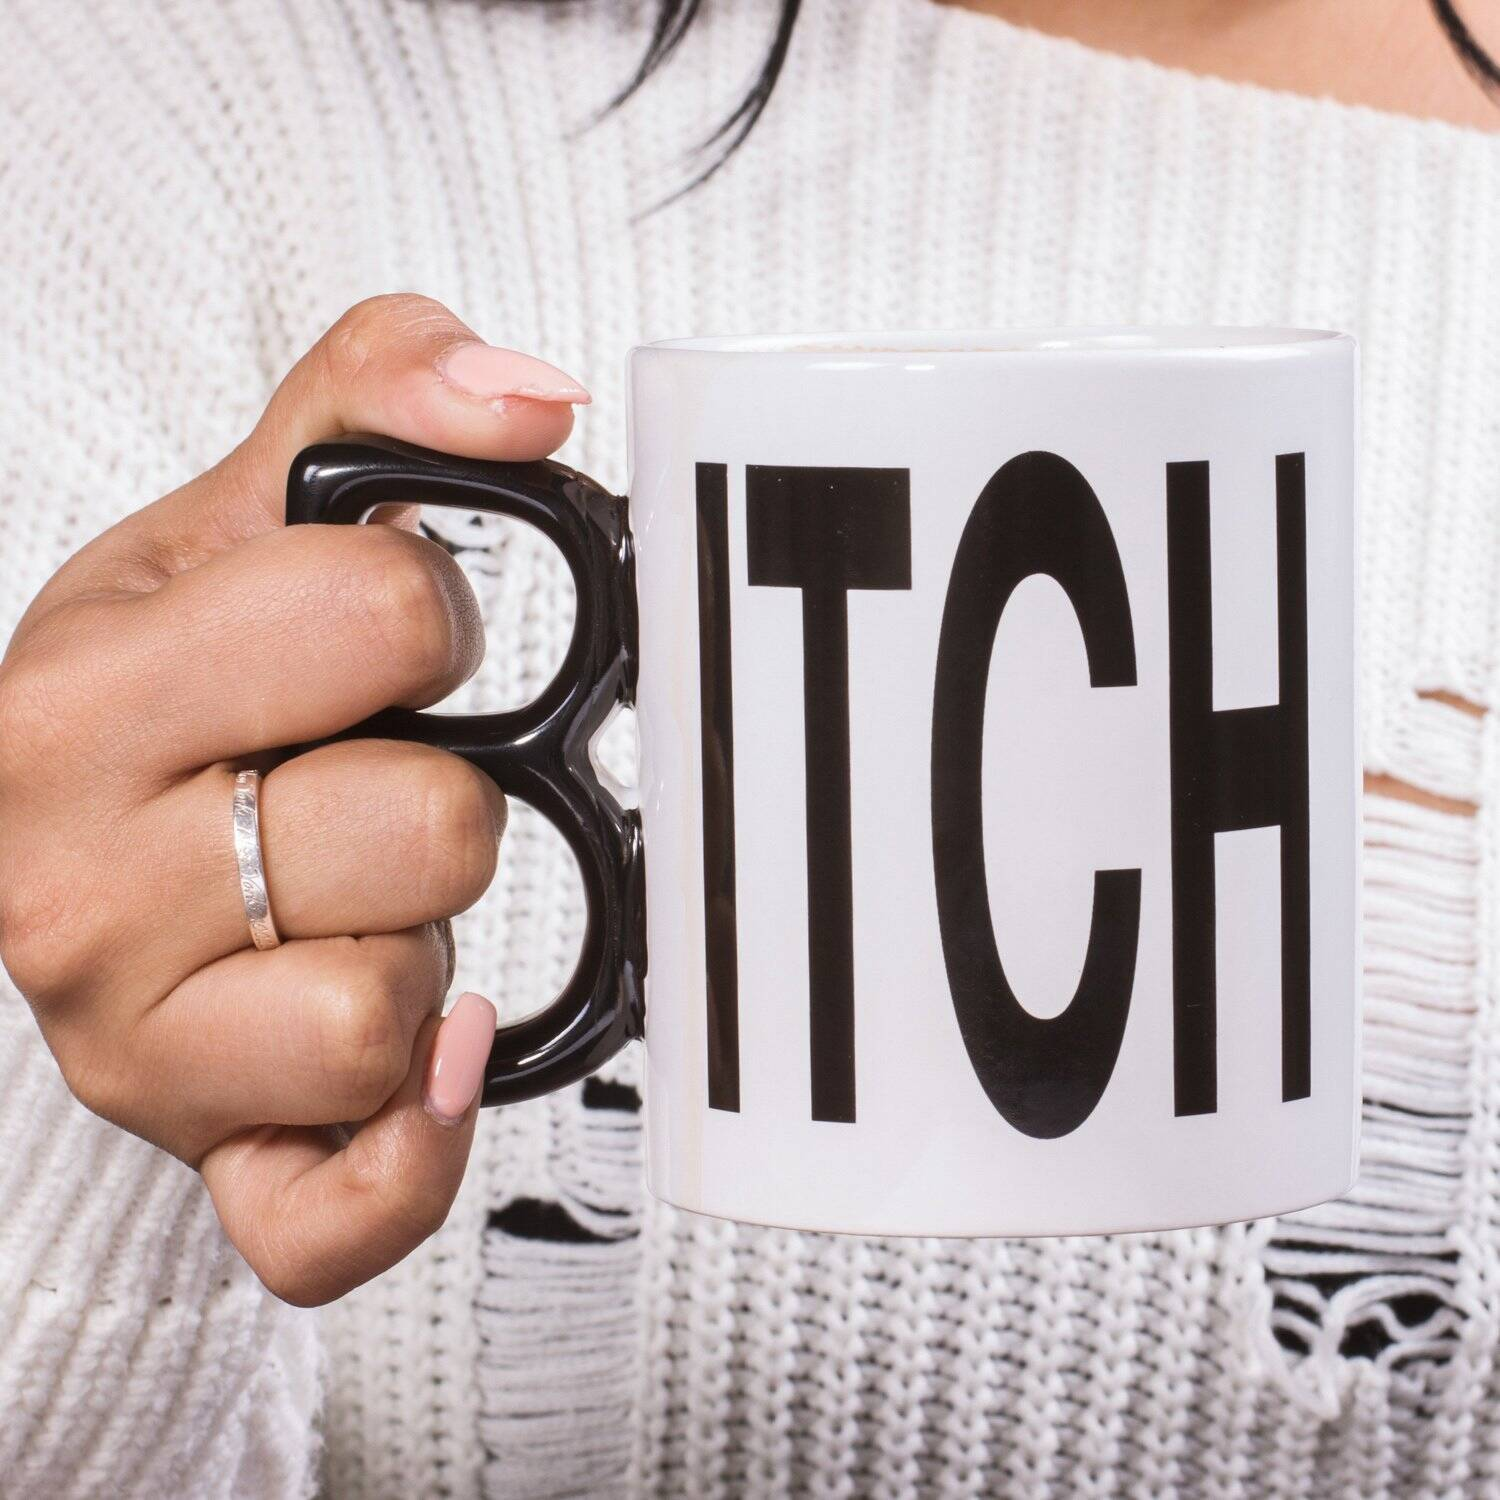 B-itch Mug - http://coolthings.us